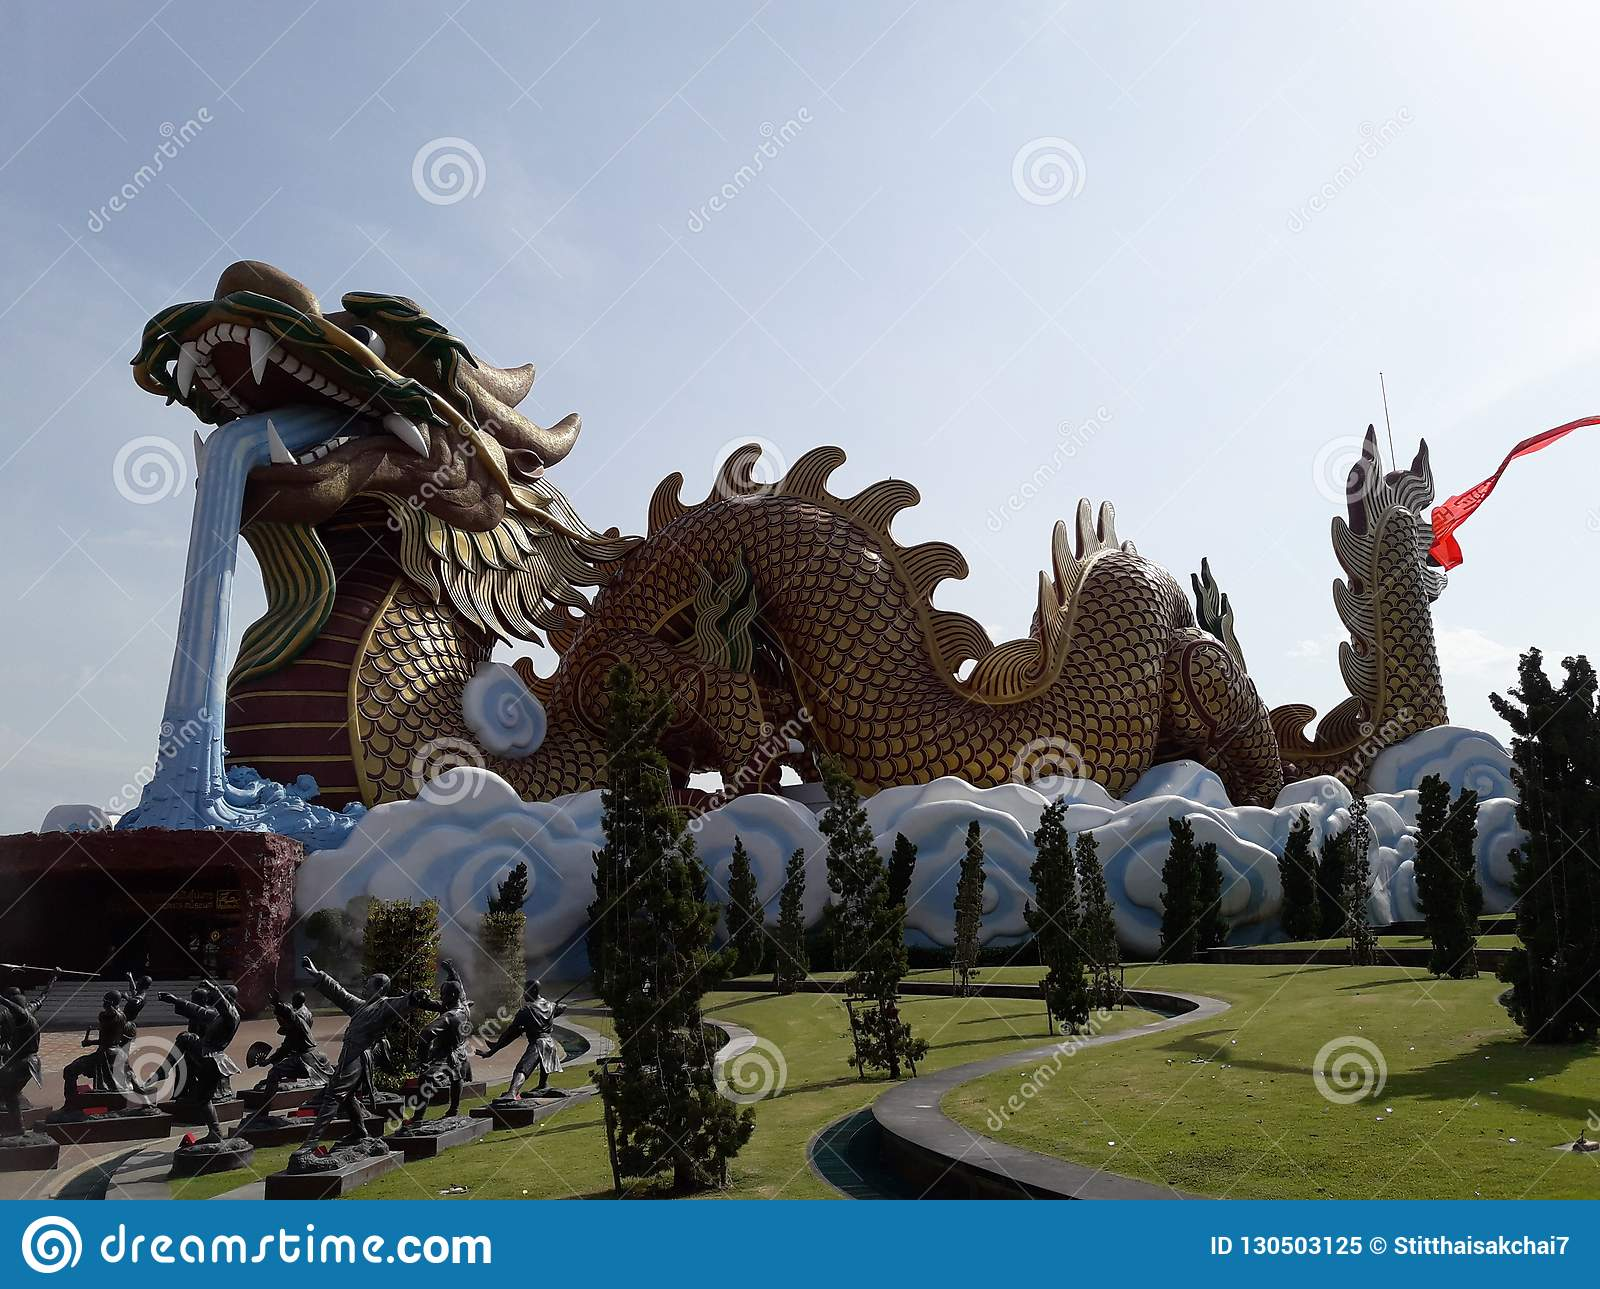 Giant Dragon Statue The Giant Dragon In Suphanburi Thailand Stock Image Image Of